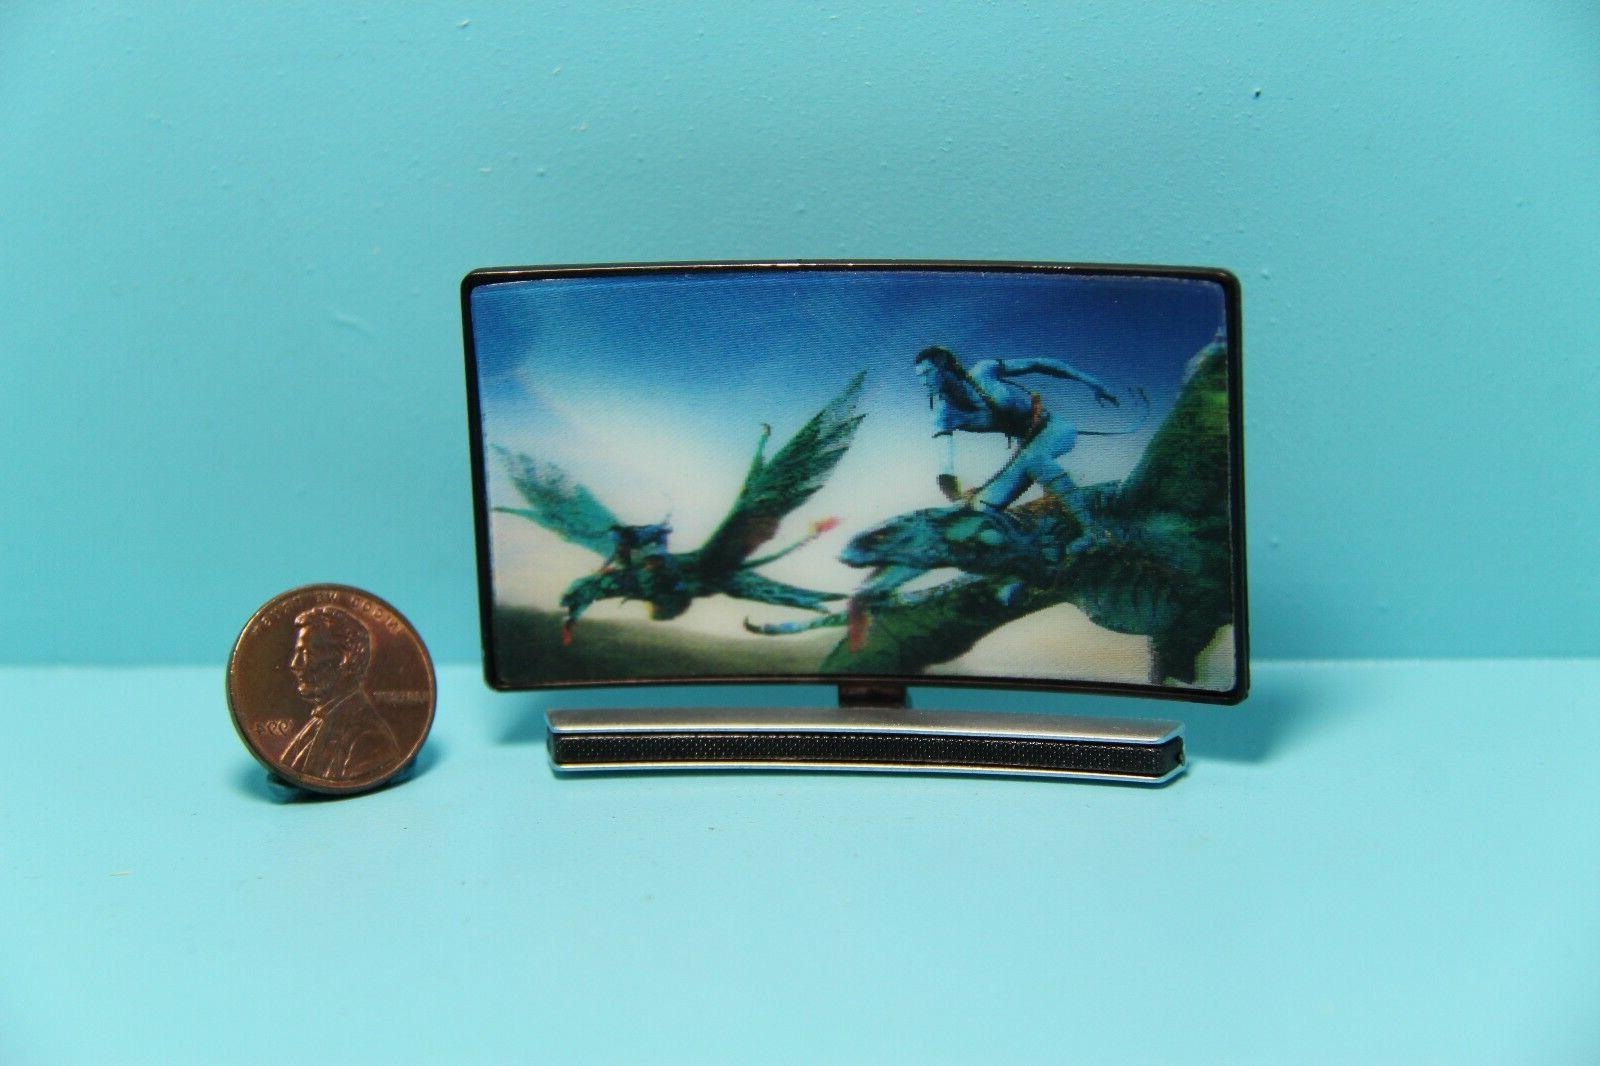 dollhouse miniature large curve screen tv